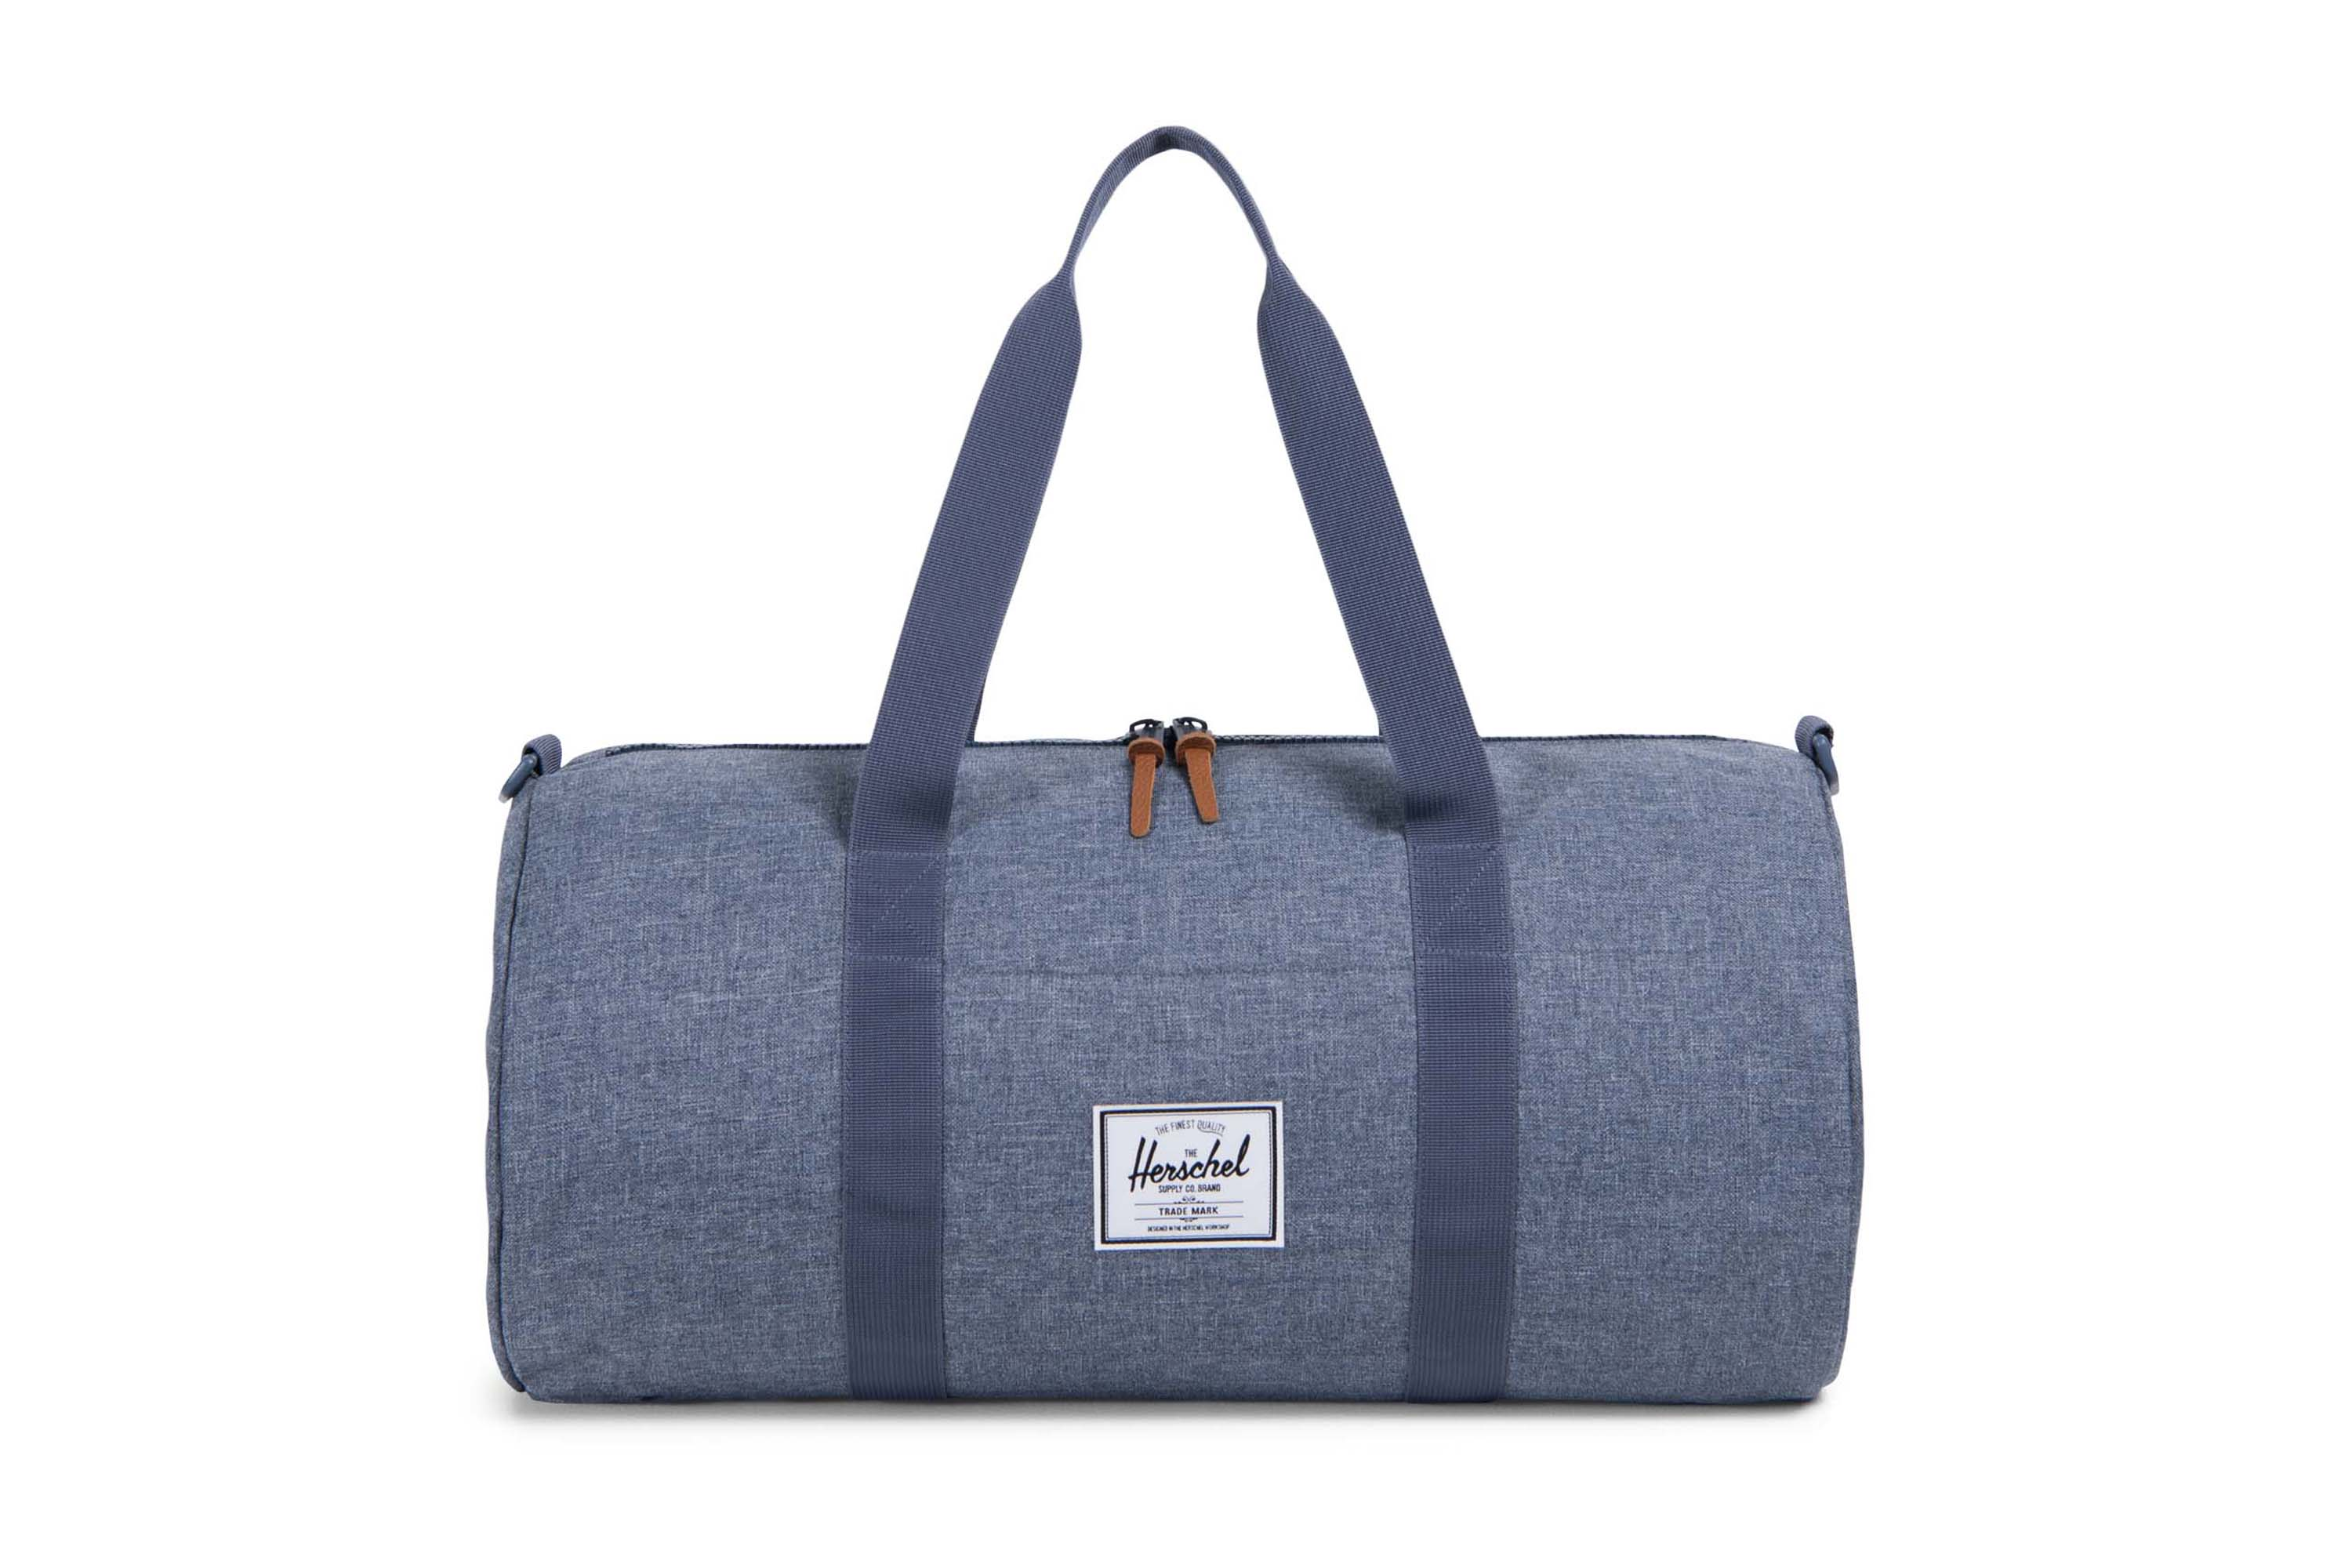 b129329d943 7 of the best gym bags for carrying your kit in style